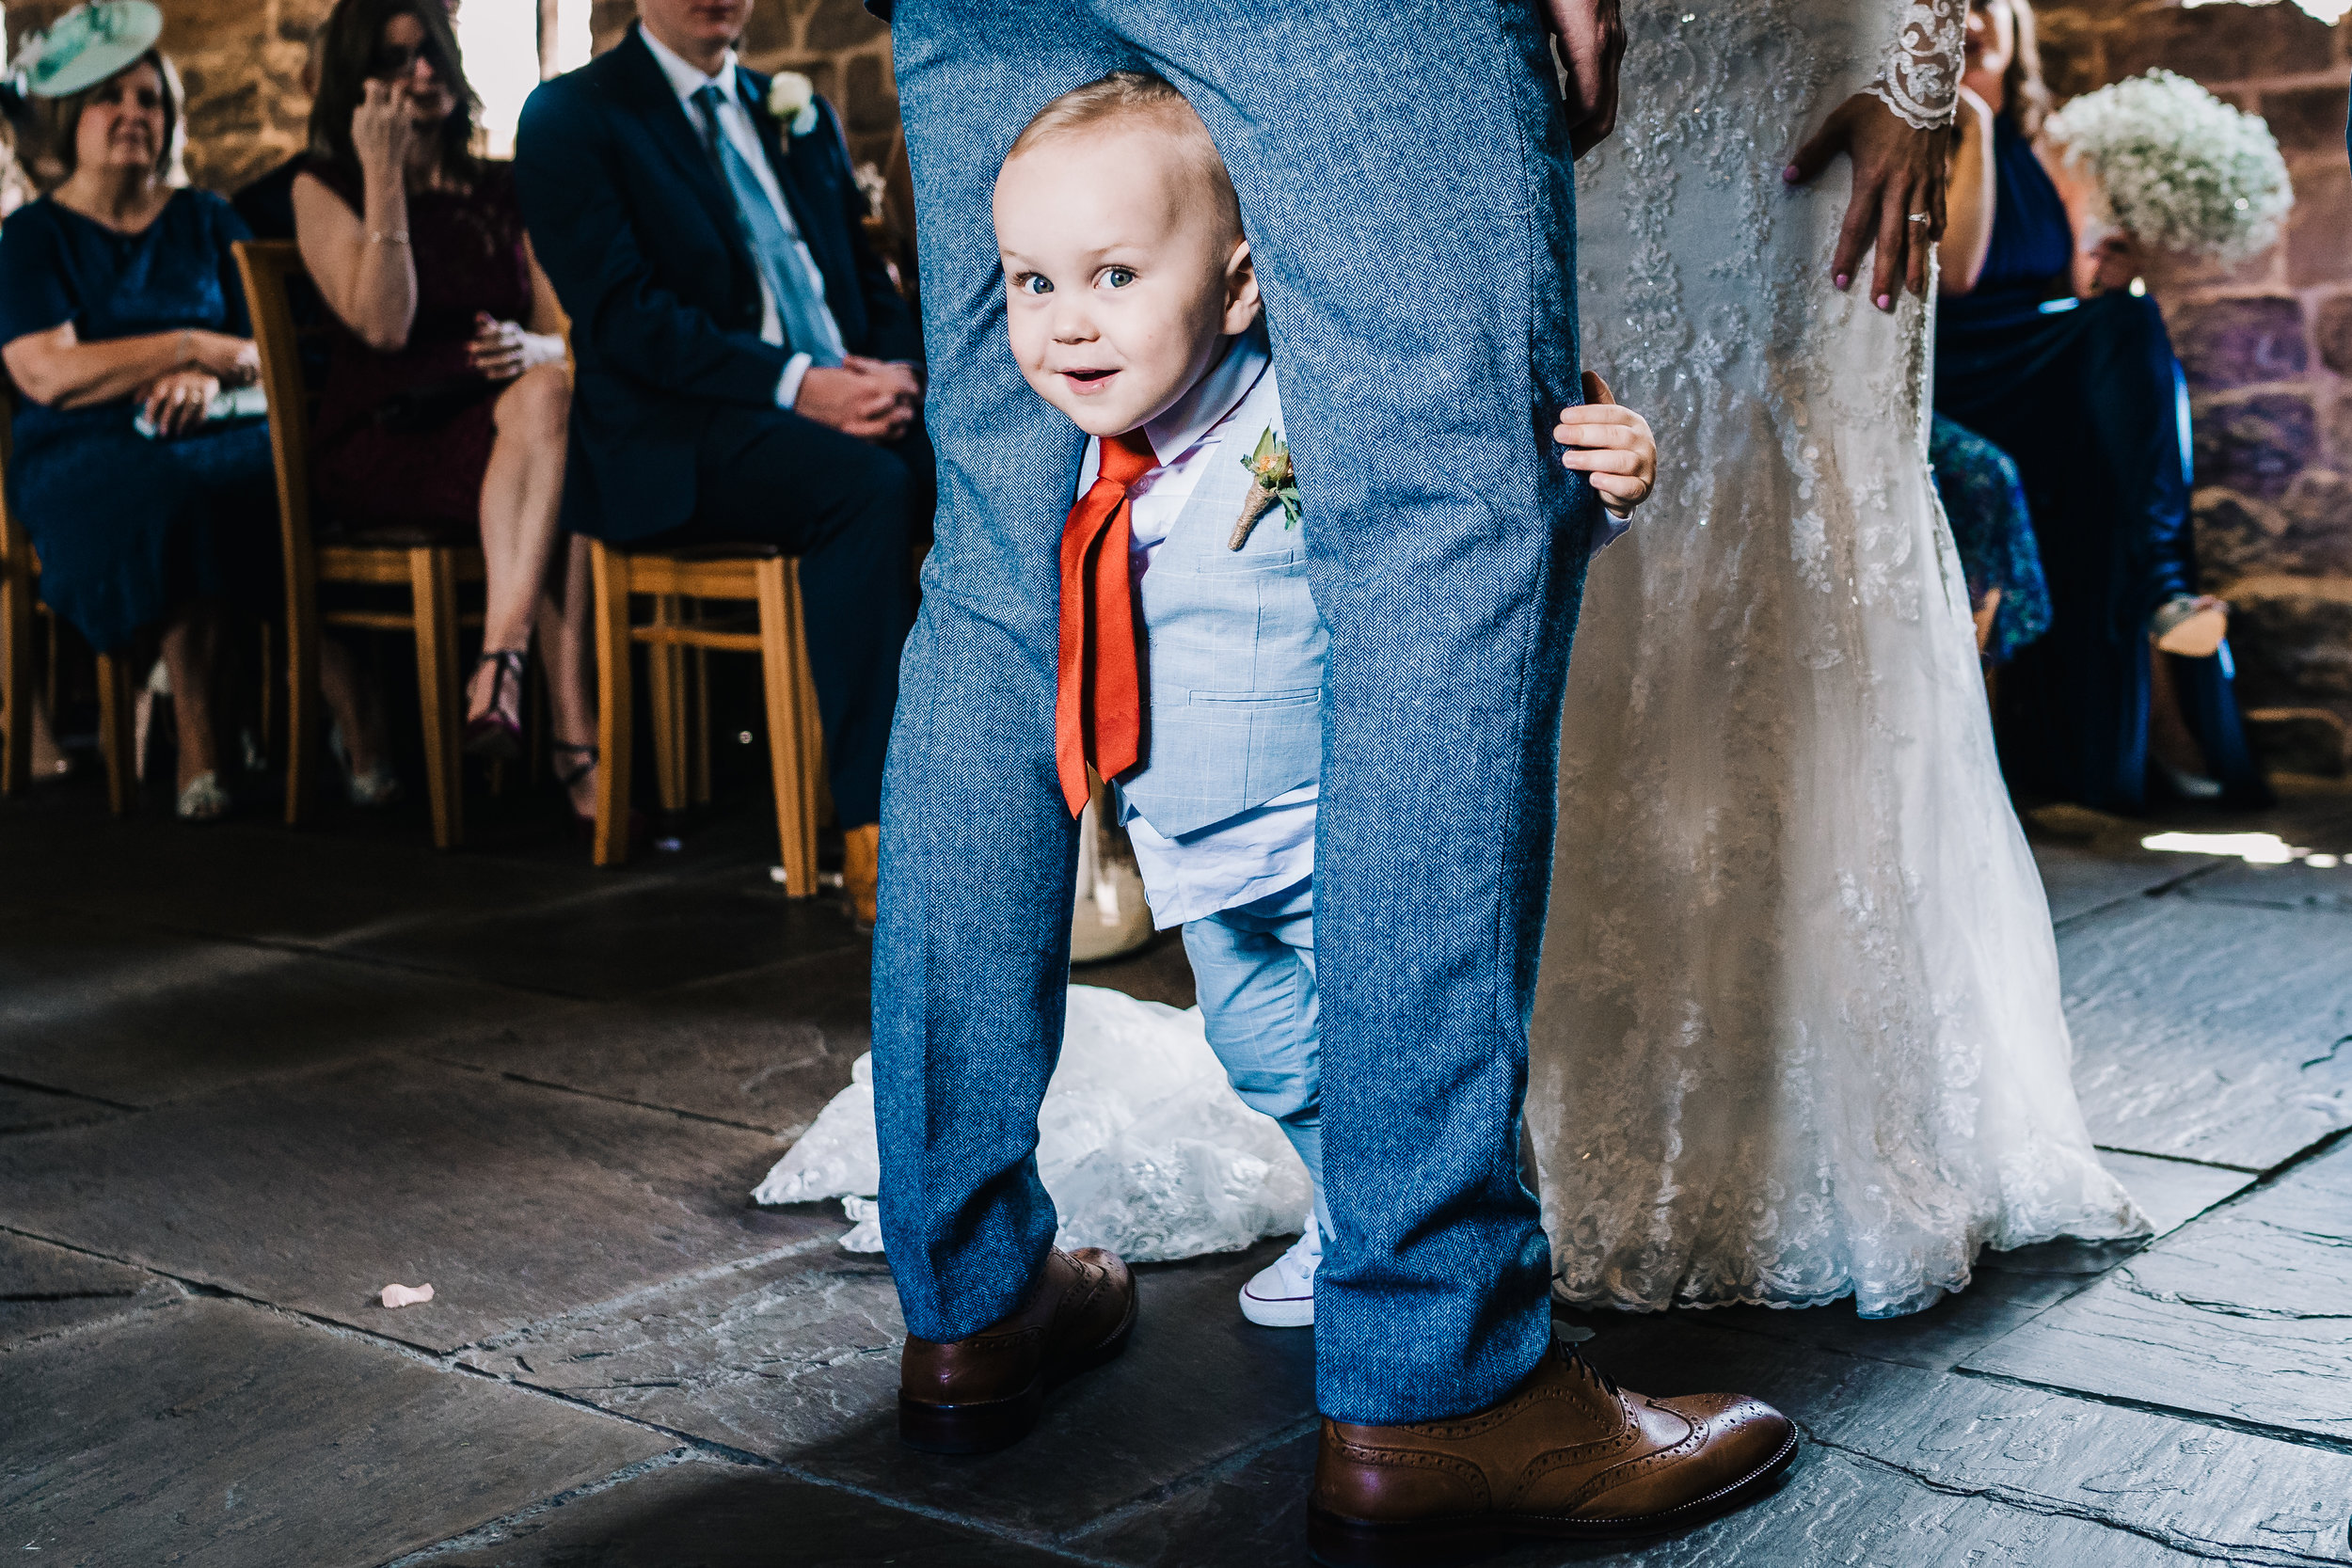 FUNNY CANDID DOCUMENTARY MOMENT AT WEDDING BY JAMES ANDREW PHOTOGRAPHY